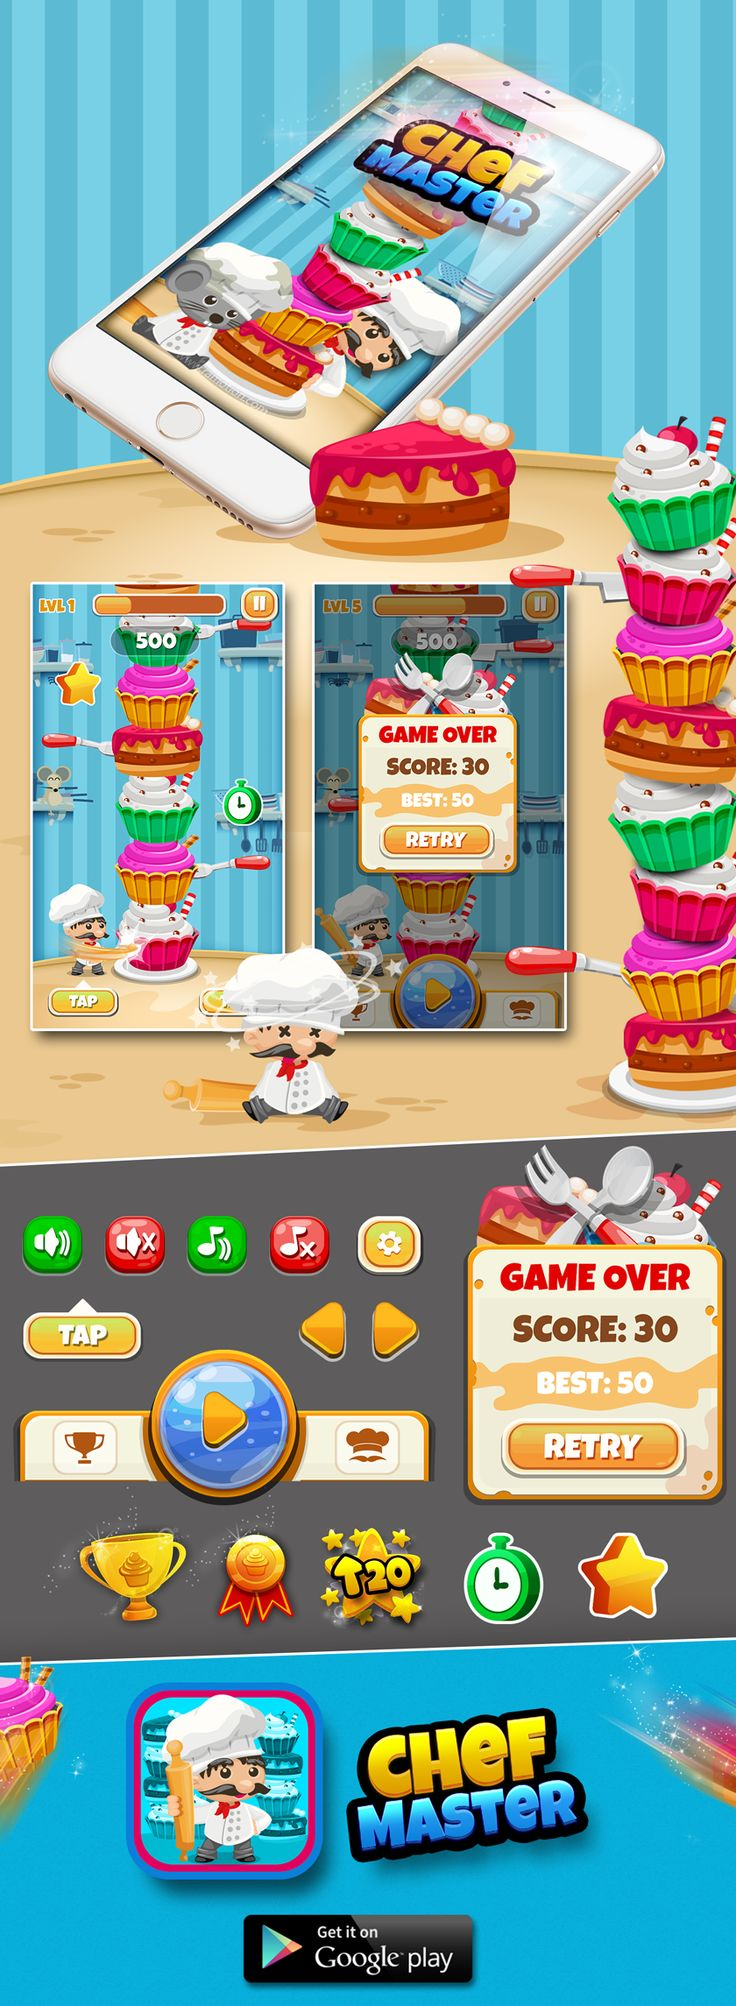 Chef Master! - Game on Behance